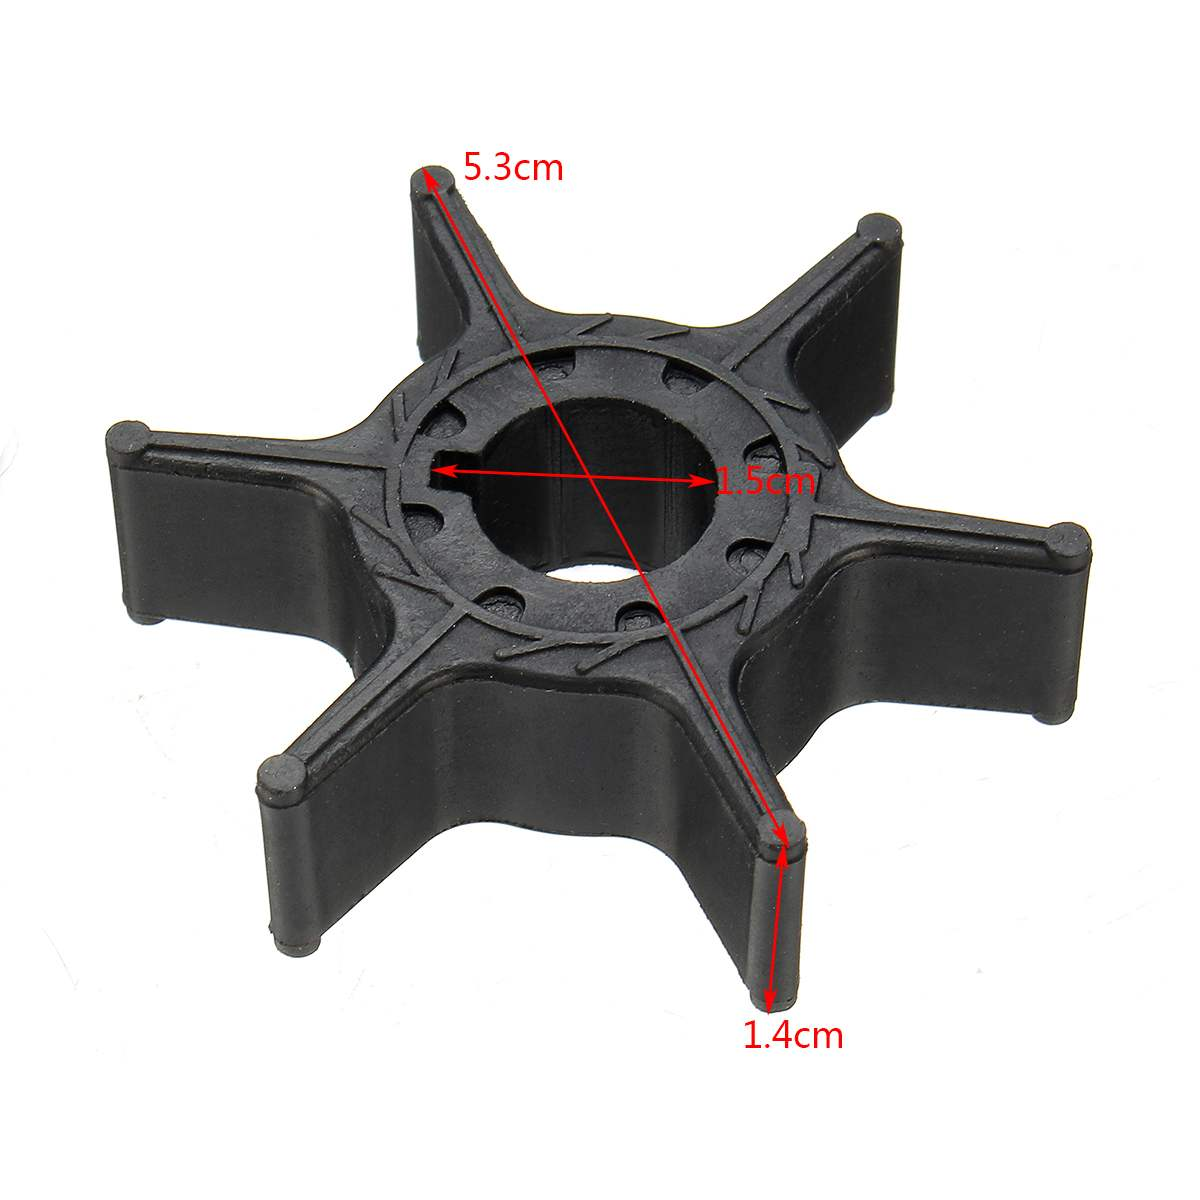 63V-44352-01 Water Pump Impeller For Yamaha 8HP 9.9HP <font><b>15HP</b></font> 20HP <font><b>Outboard</b></font> <font><b>Motor</b></font> Black Rubber 6 Blades Boat Parts & Accessories image